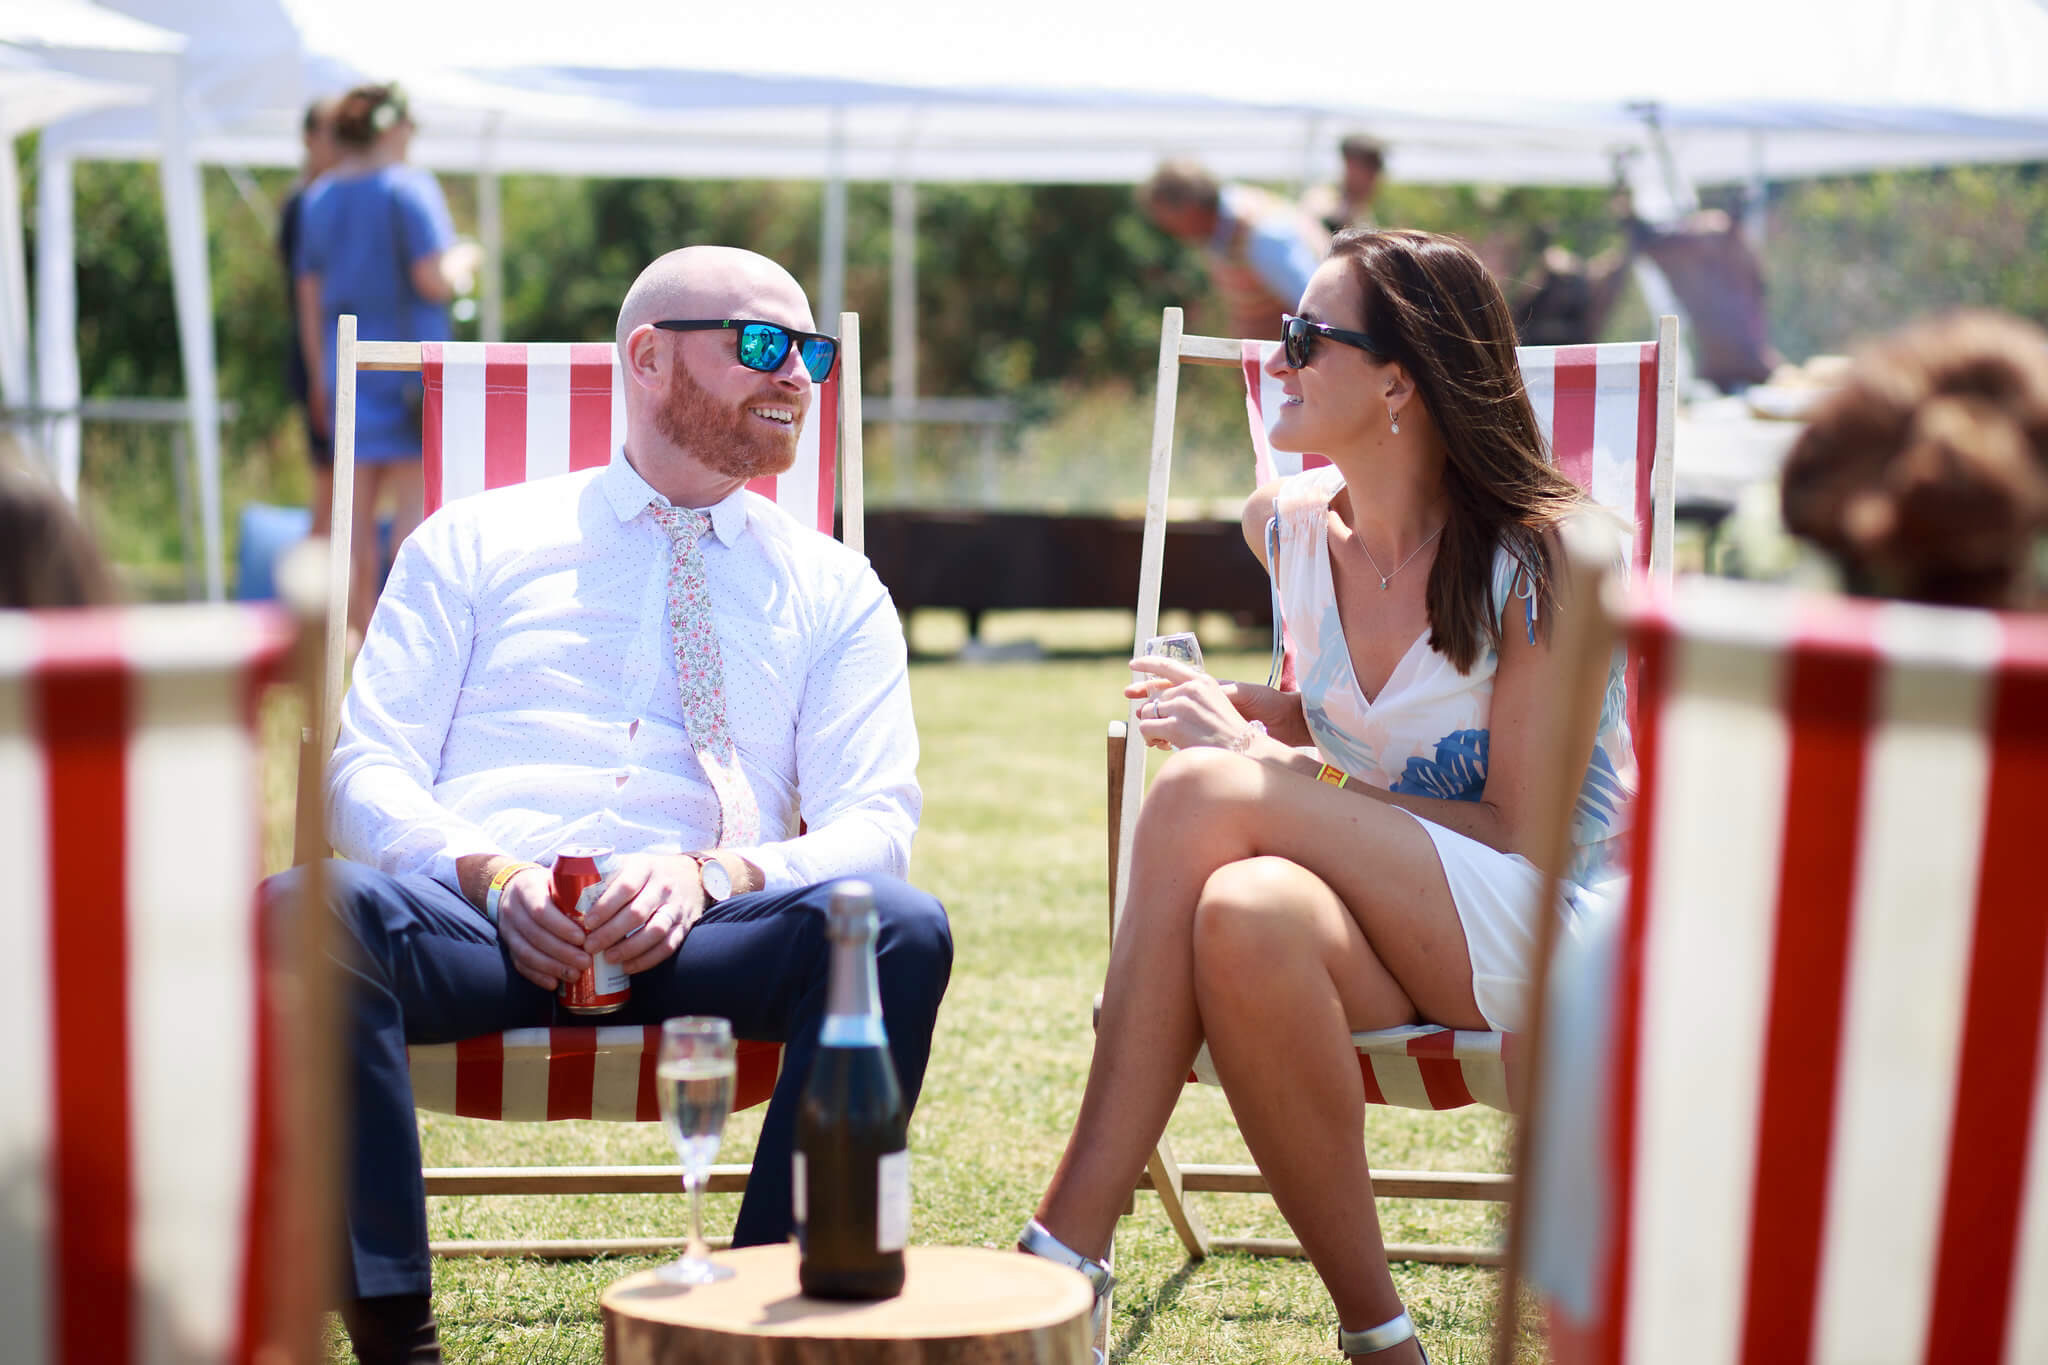 Deckchair hire for weddings for guests  relaxing